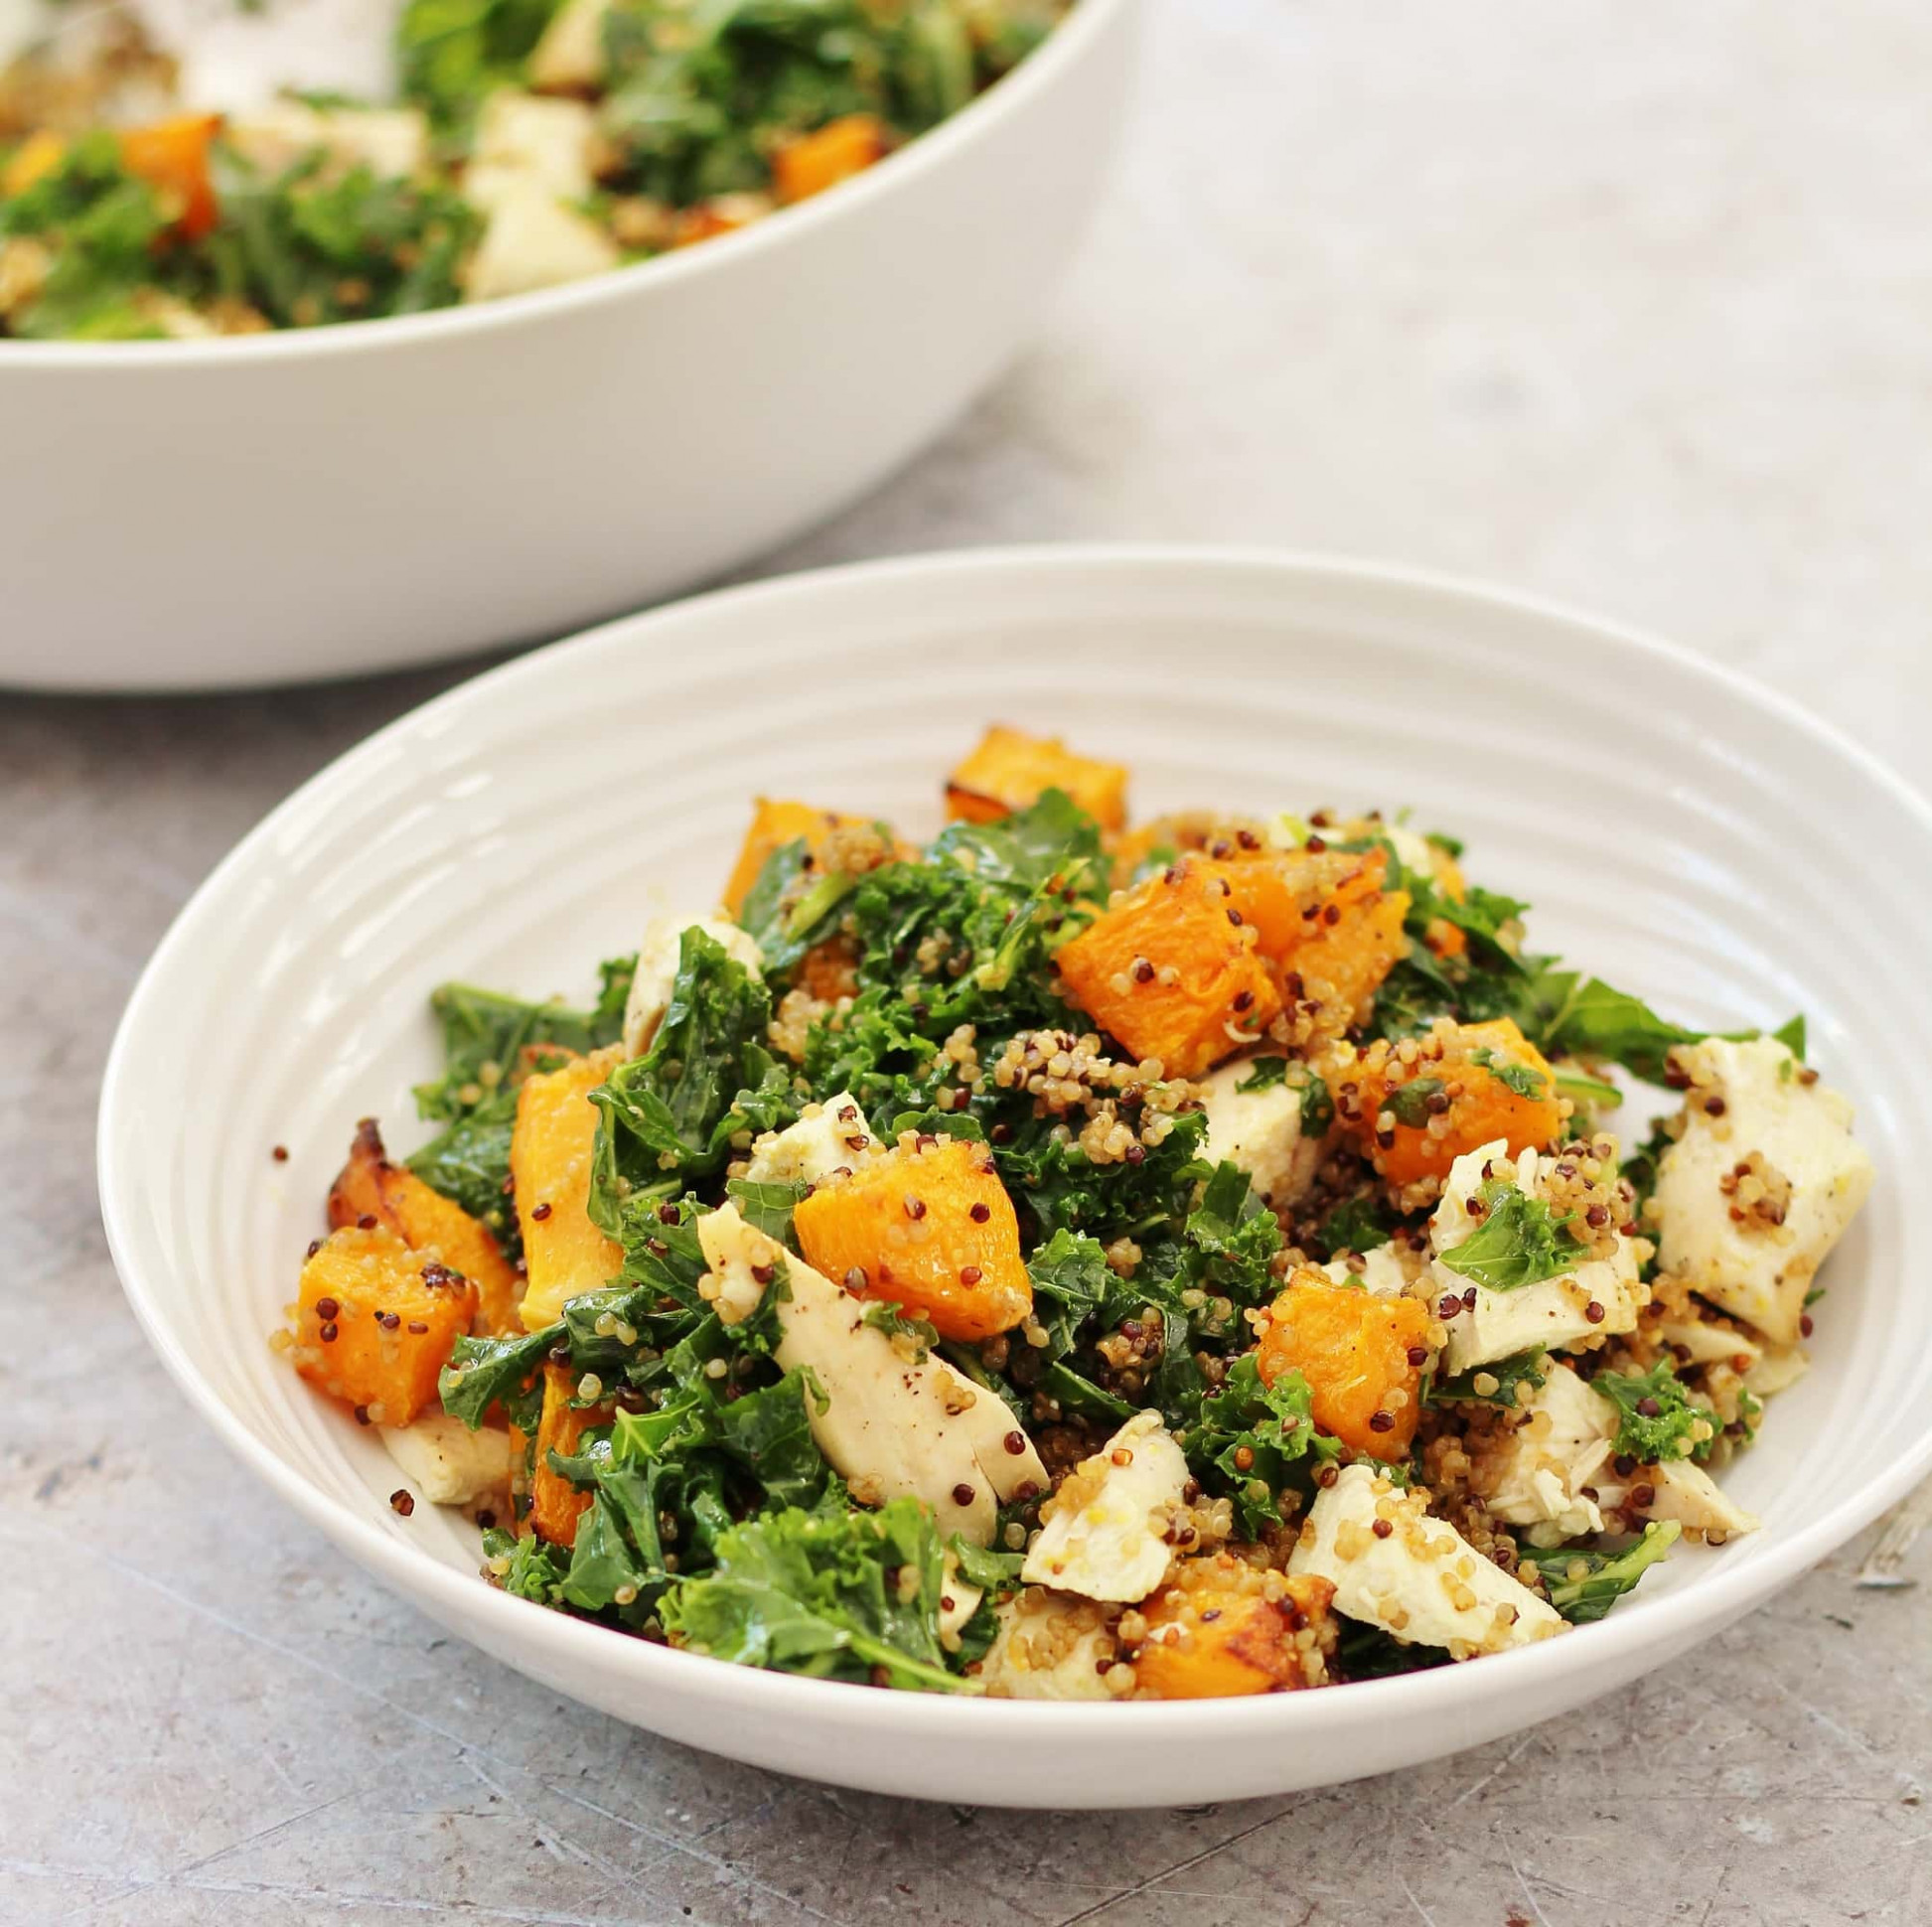 Leftover Chicken, Kale, Quinoa and Pumpkin Salad - recipes kale and chicken